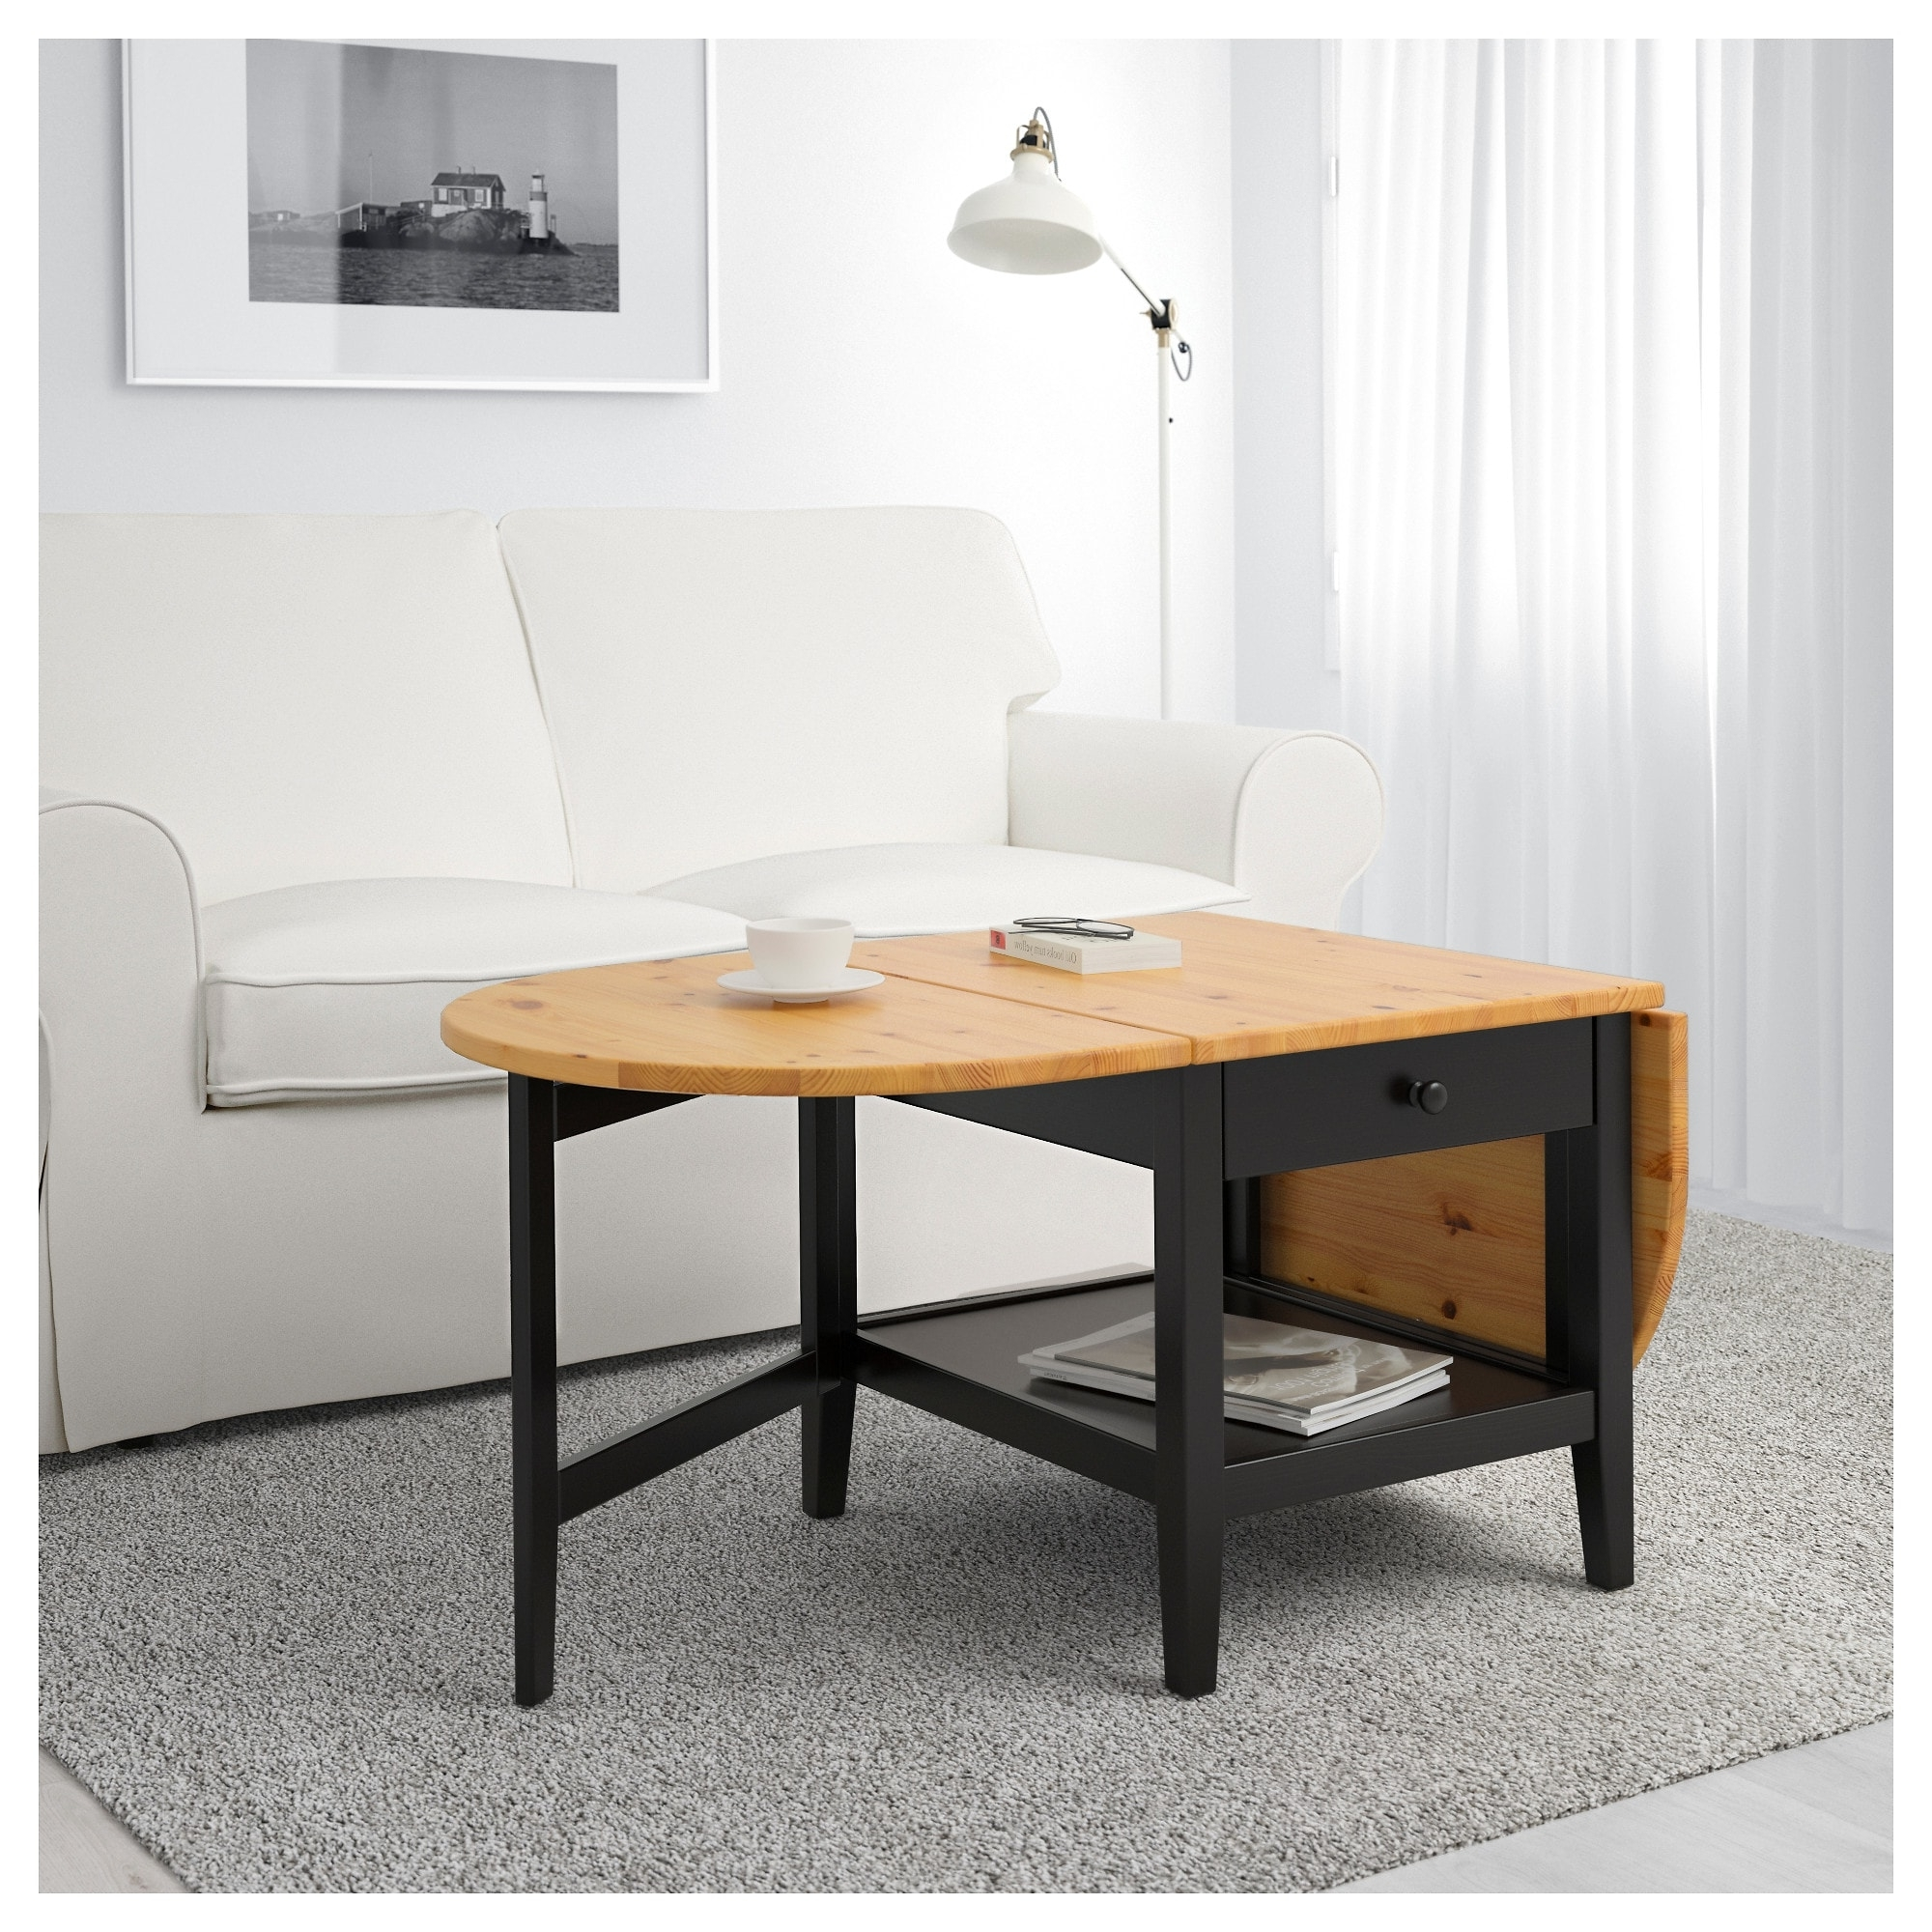 Arkelstorp Coffee Table Black 65 X 140 X 52 Cm – Ikea Within Most Recently Released Light Natural Coffee Tables (Gallery 13 of 20)